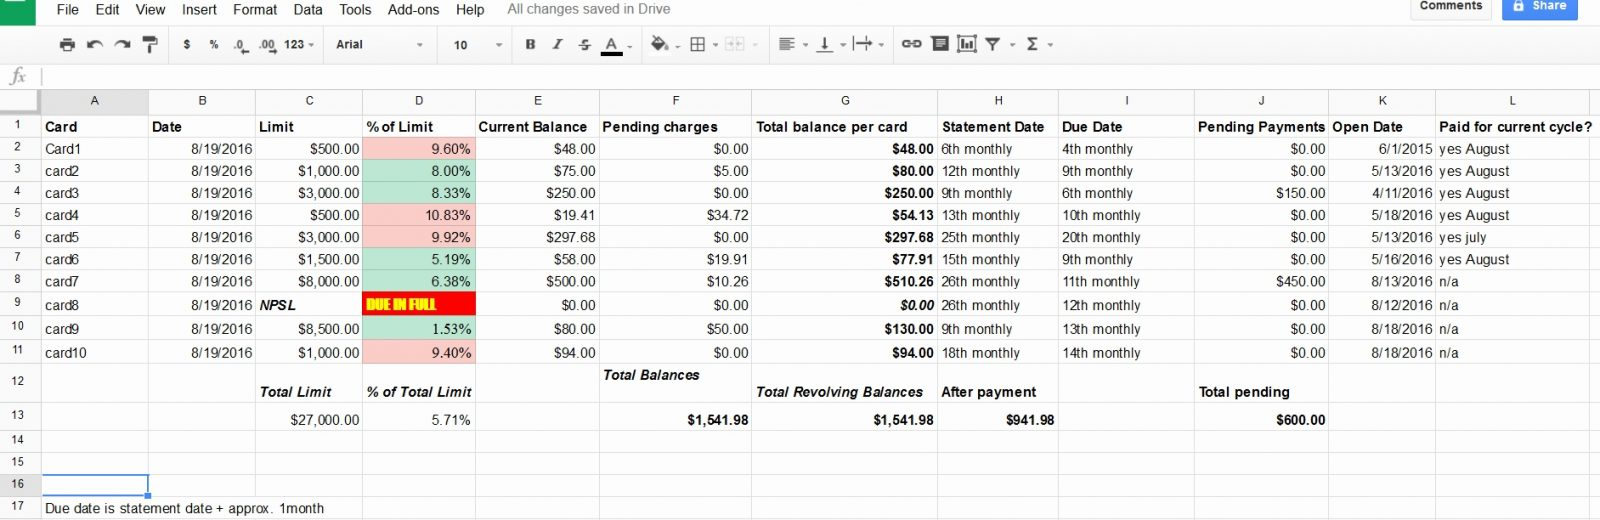 Flitch Beam Spreadsheet With Flitch Beam Design Spreadsheet Examples Credit Cardment Tracking